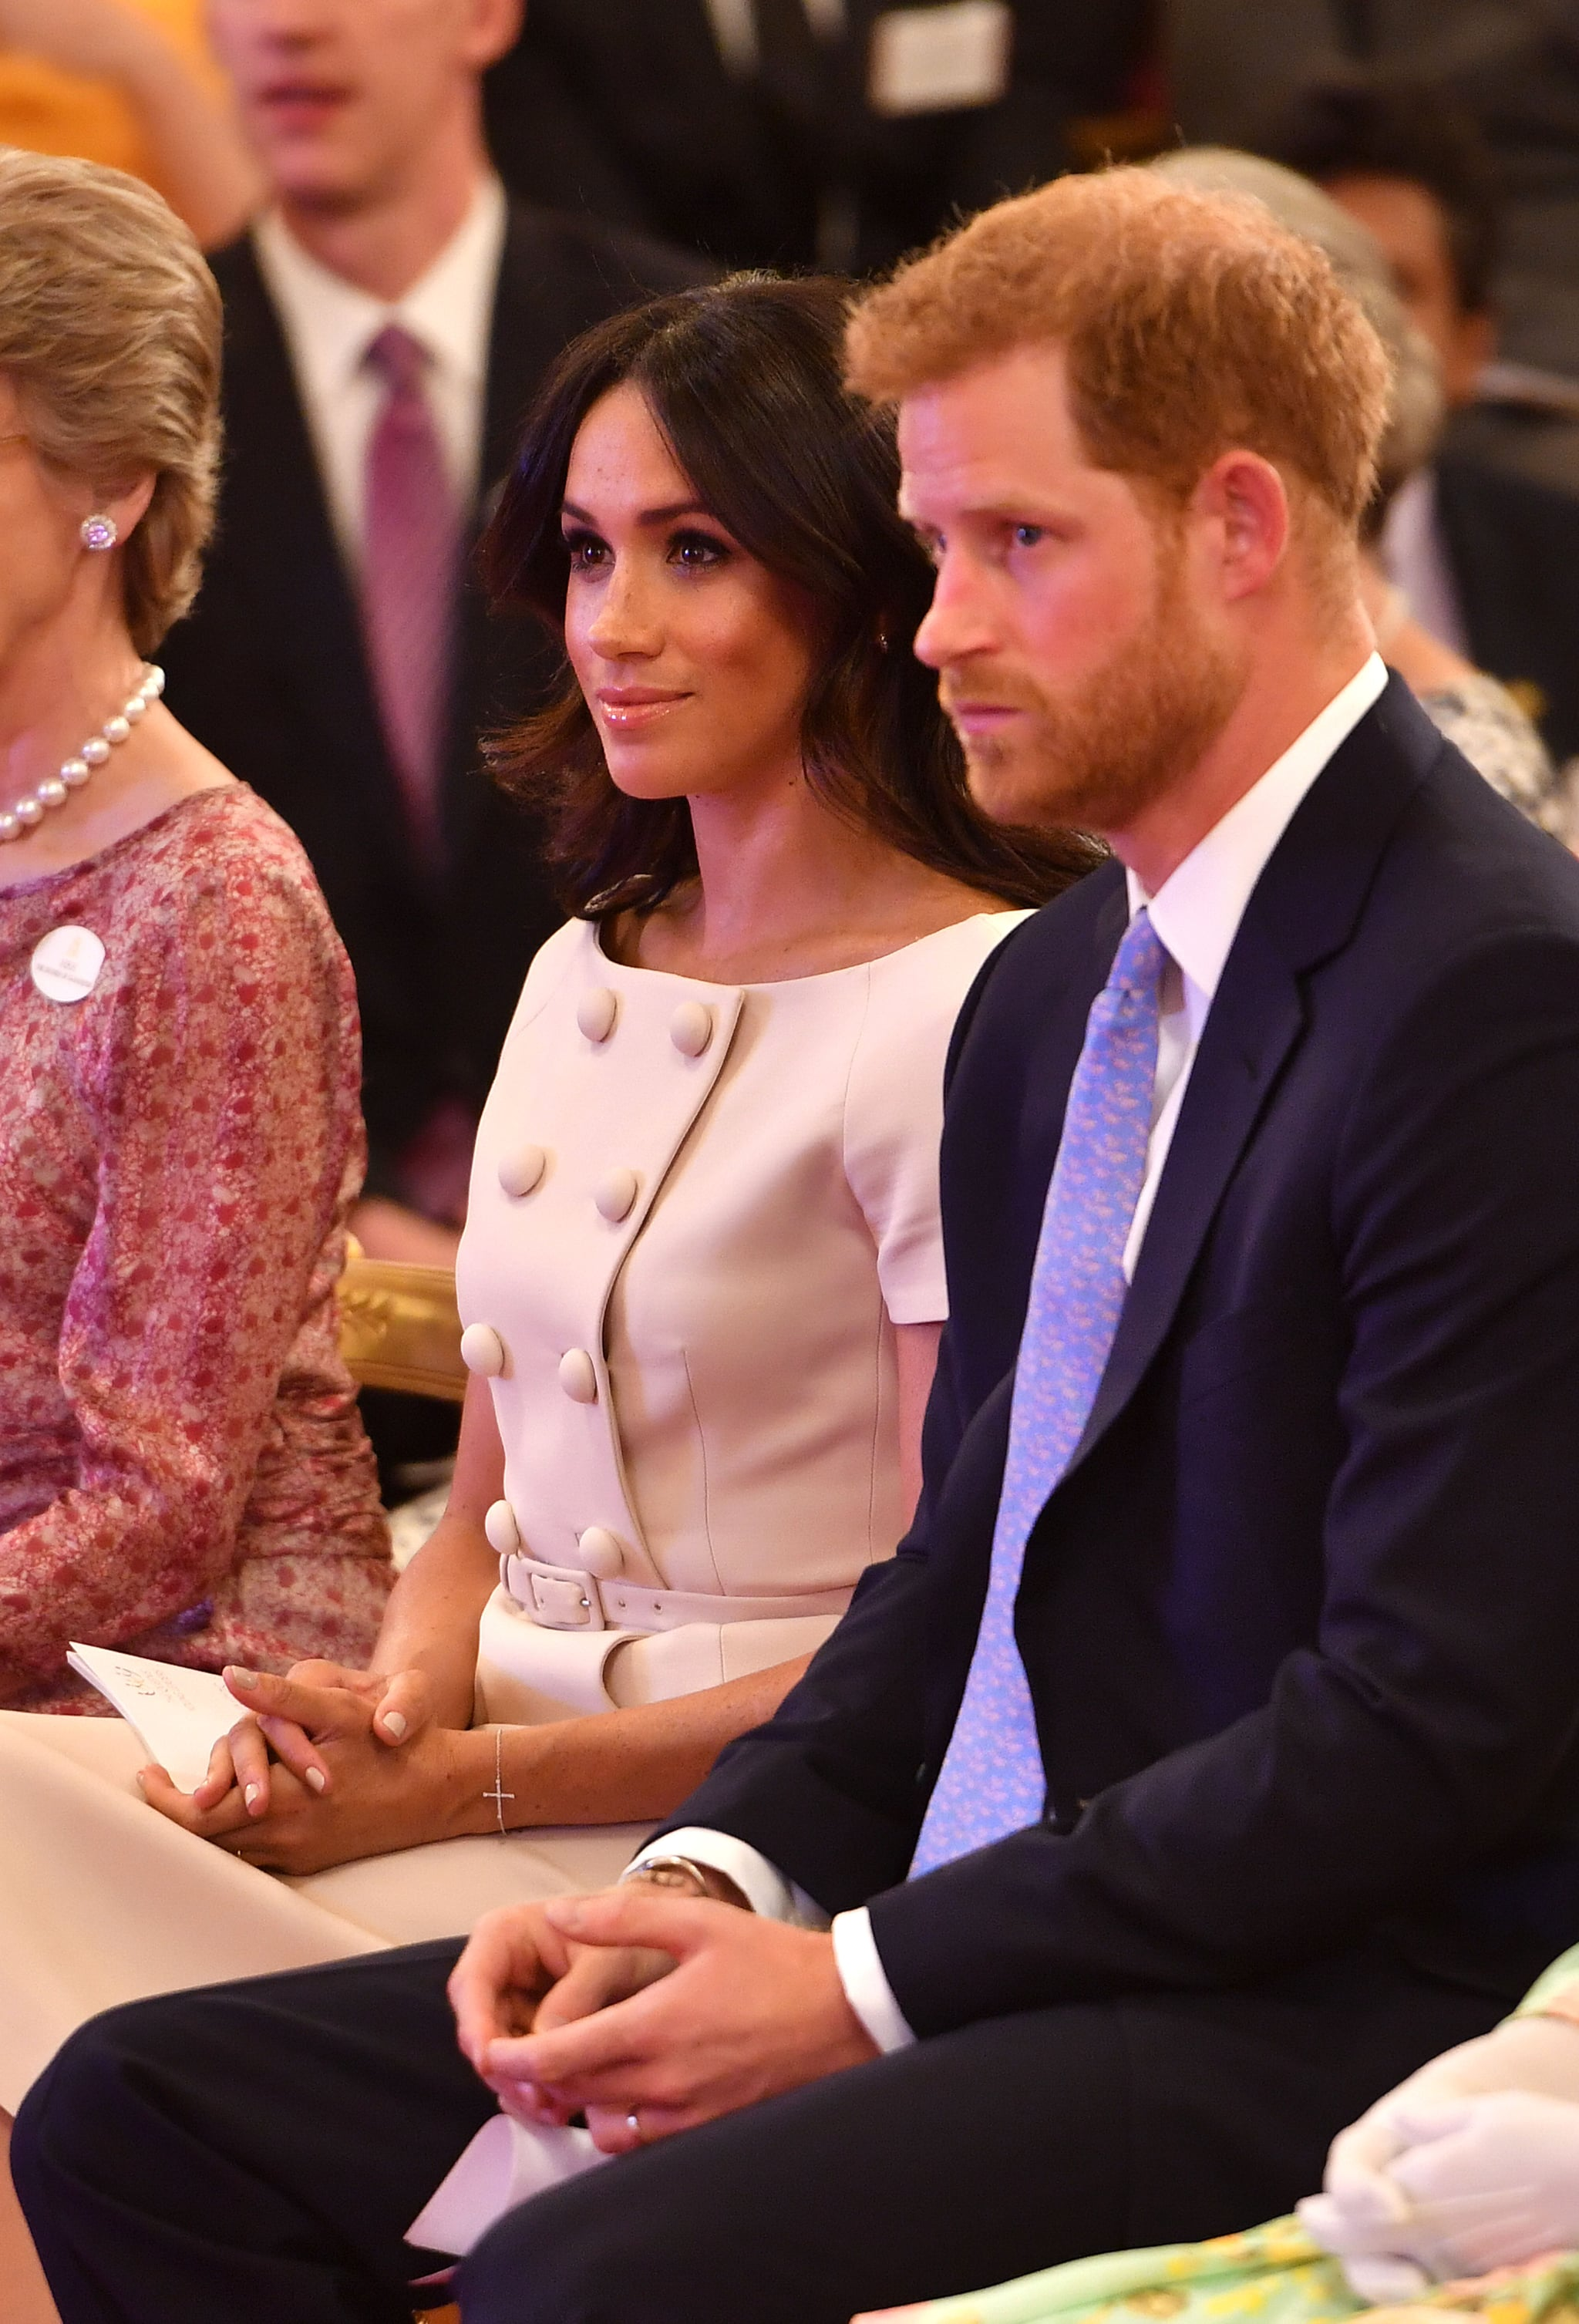 prince harry avoiding meghan markle s hand video june 2018 popsugar celebrity prince harry avoiding meghan markle s